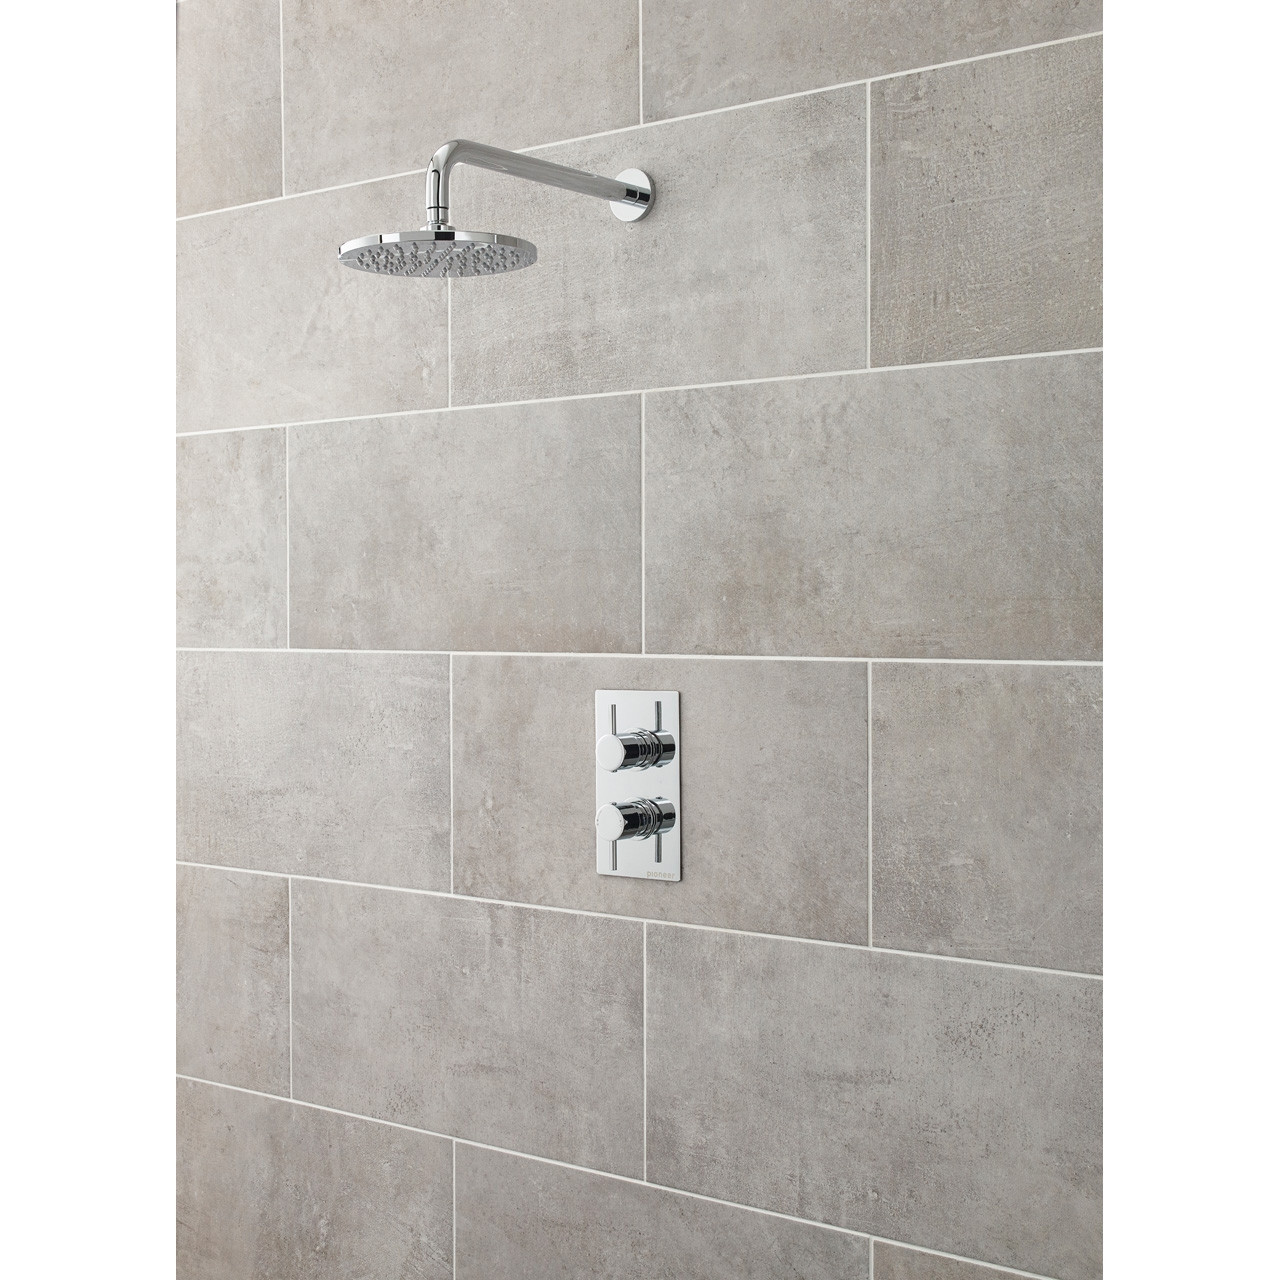 Premier Pioneer Twin Thermostatic Valve Round Handles - JTY372